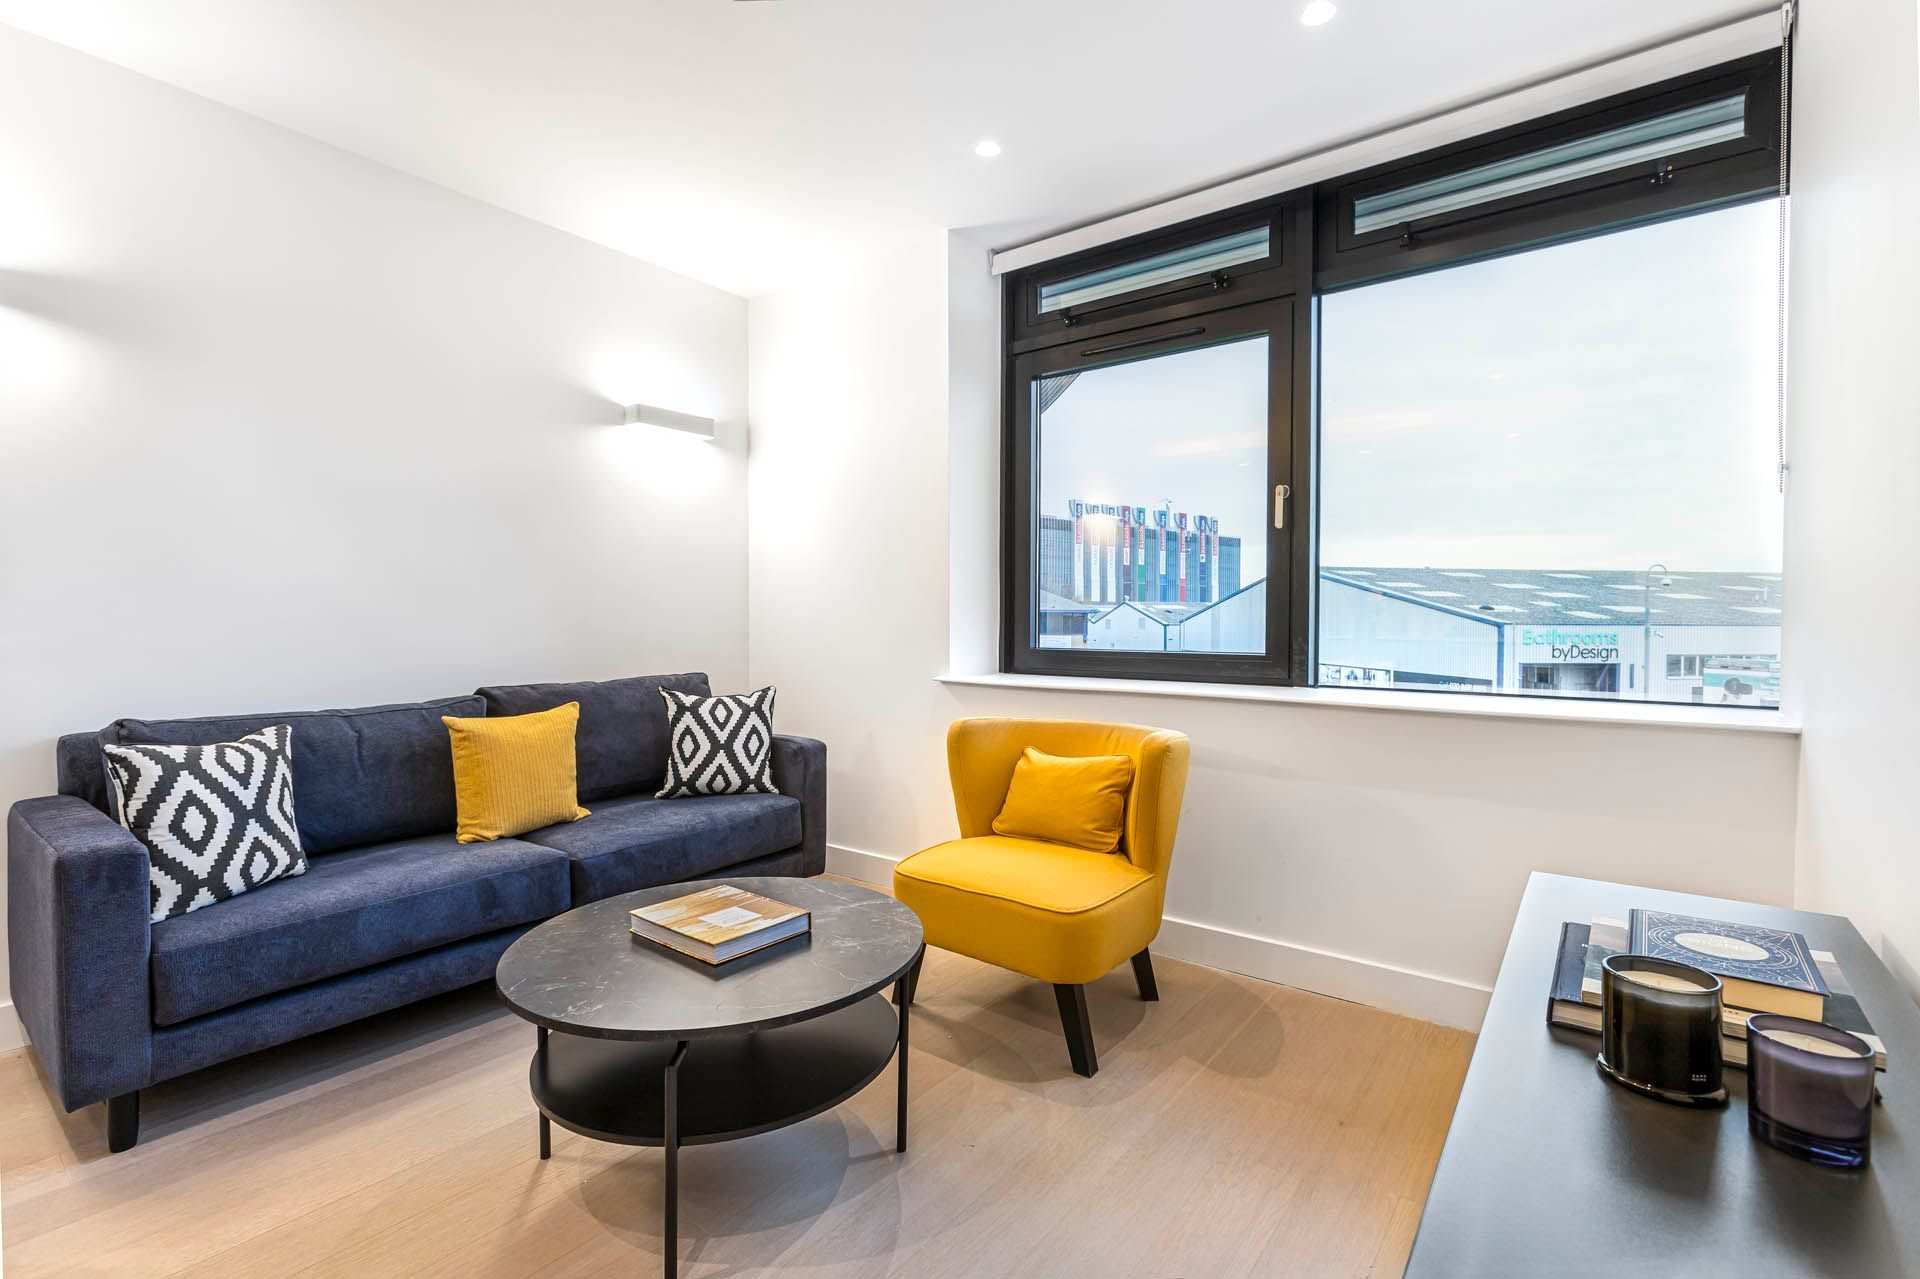 1 Bedroom apartment to rent in London SKI-FH-0033